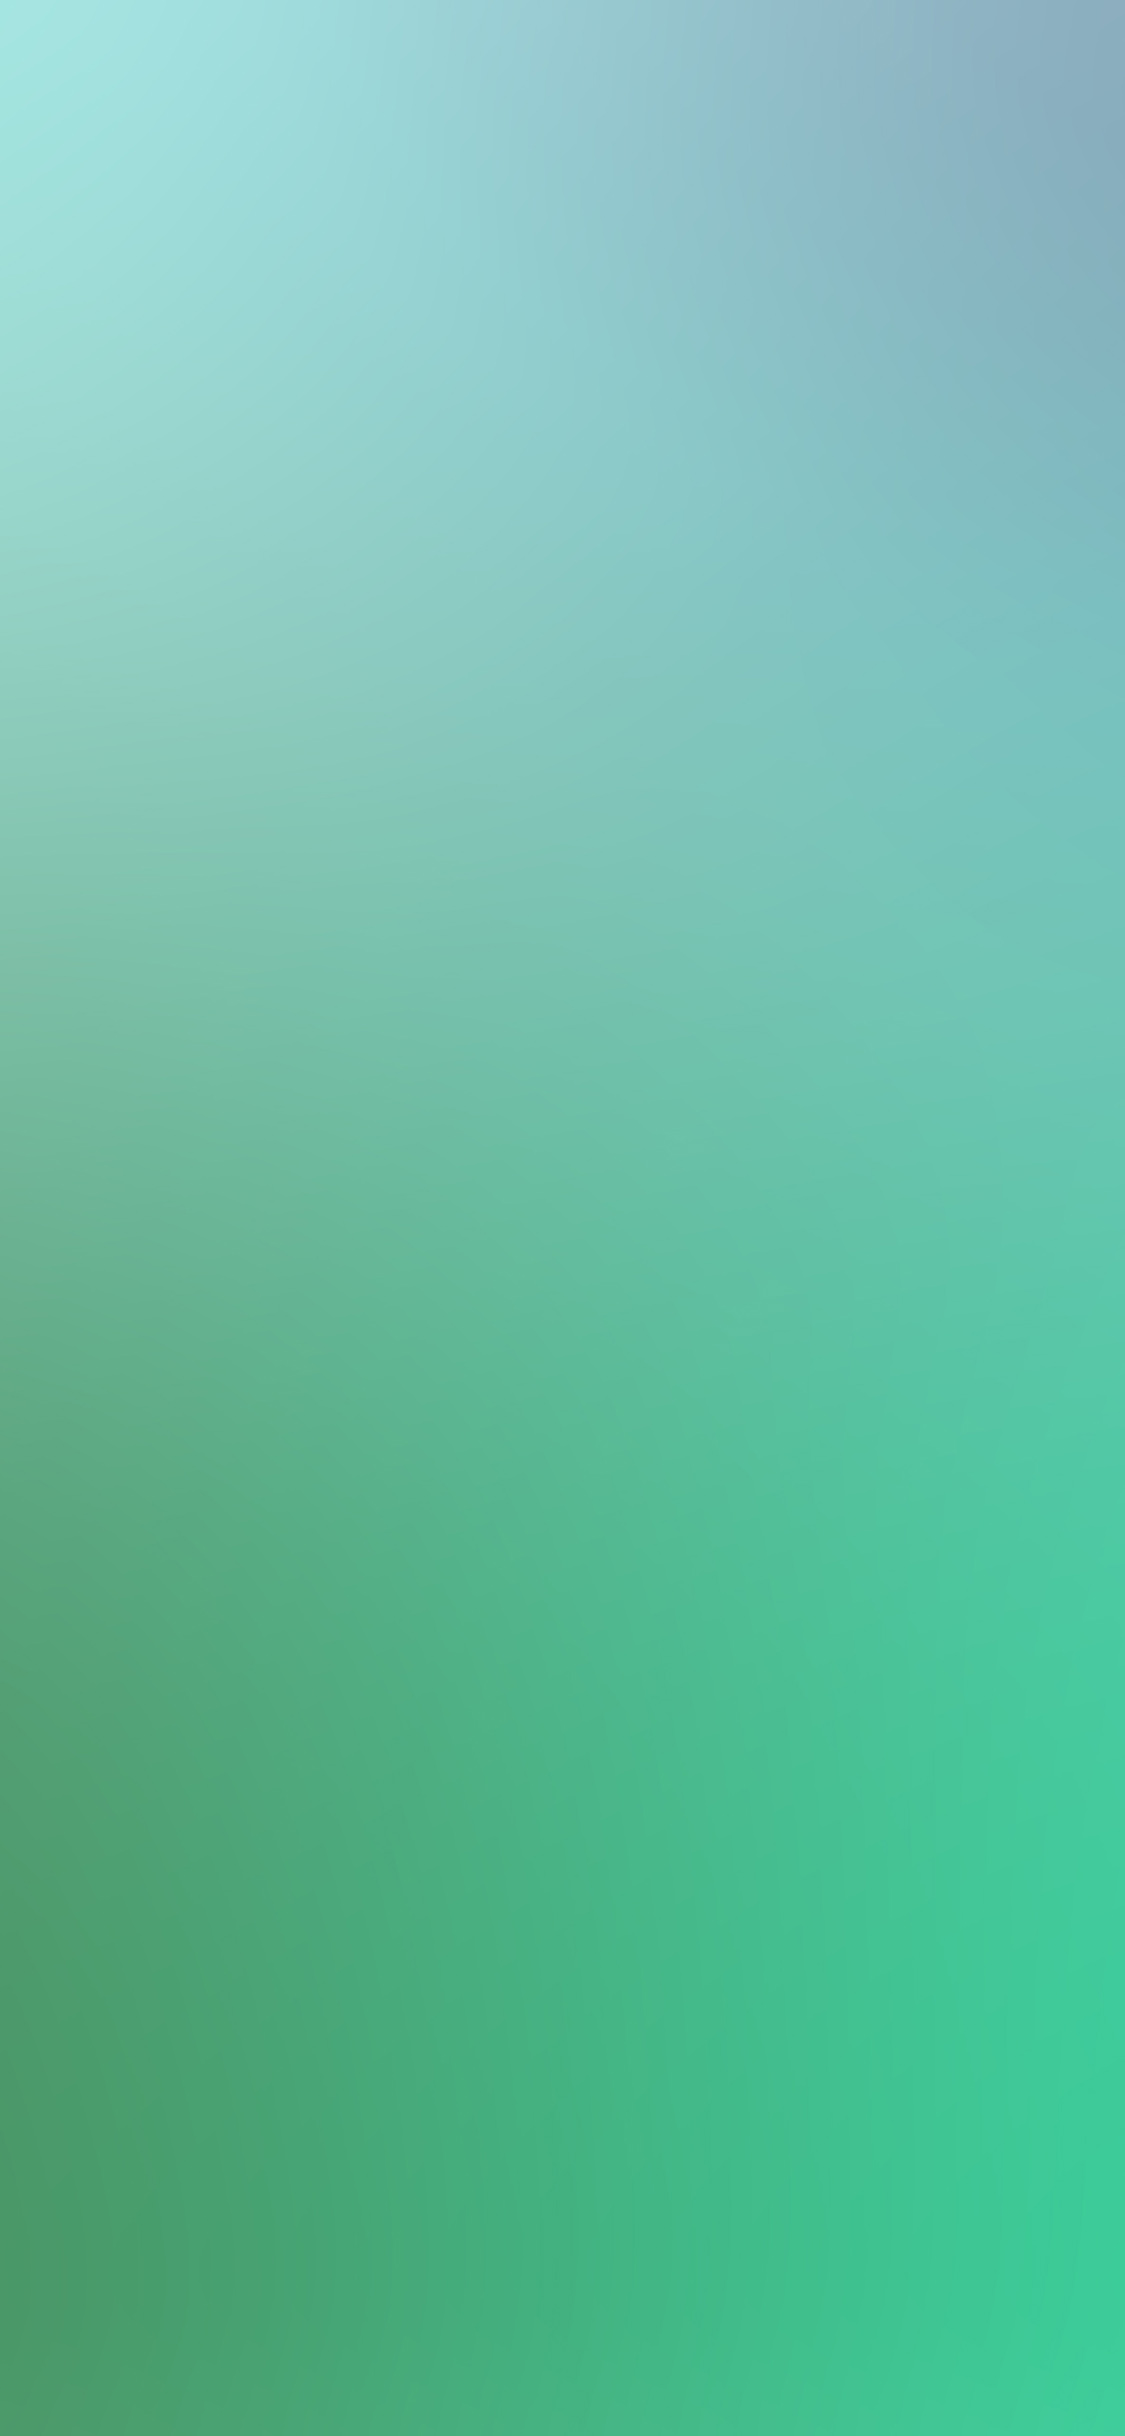 iPhoneXpapers.com-Apple-iPhone-wallpaper-sk03-blue-green-soft-blur-gradation